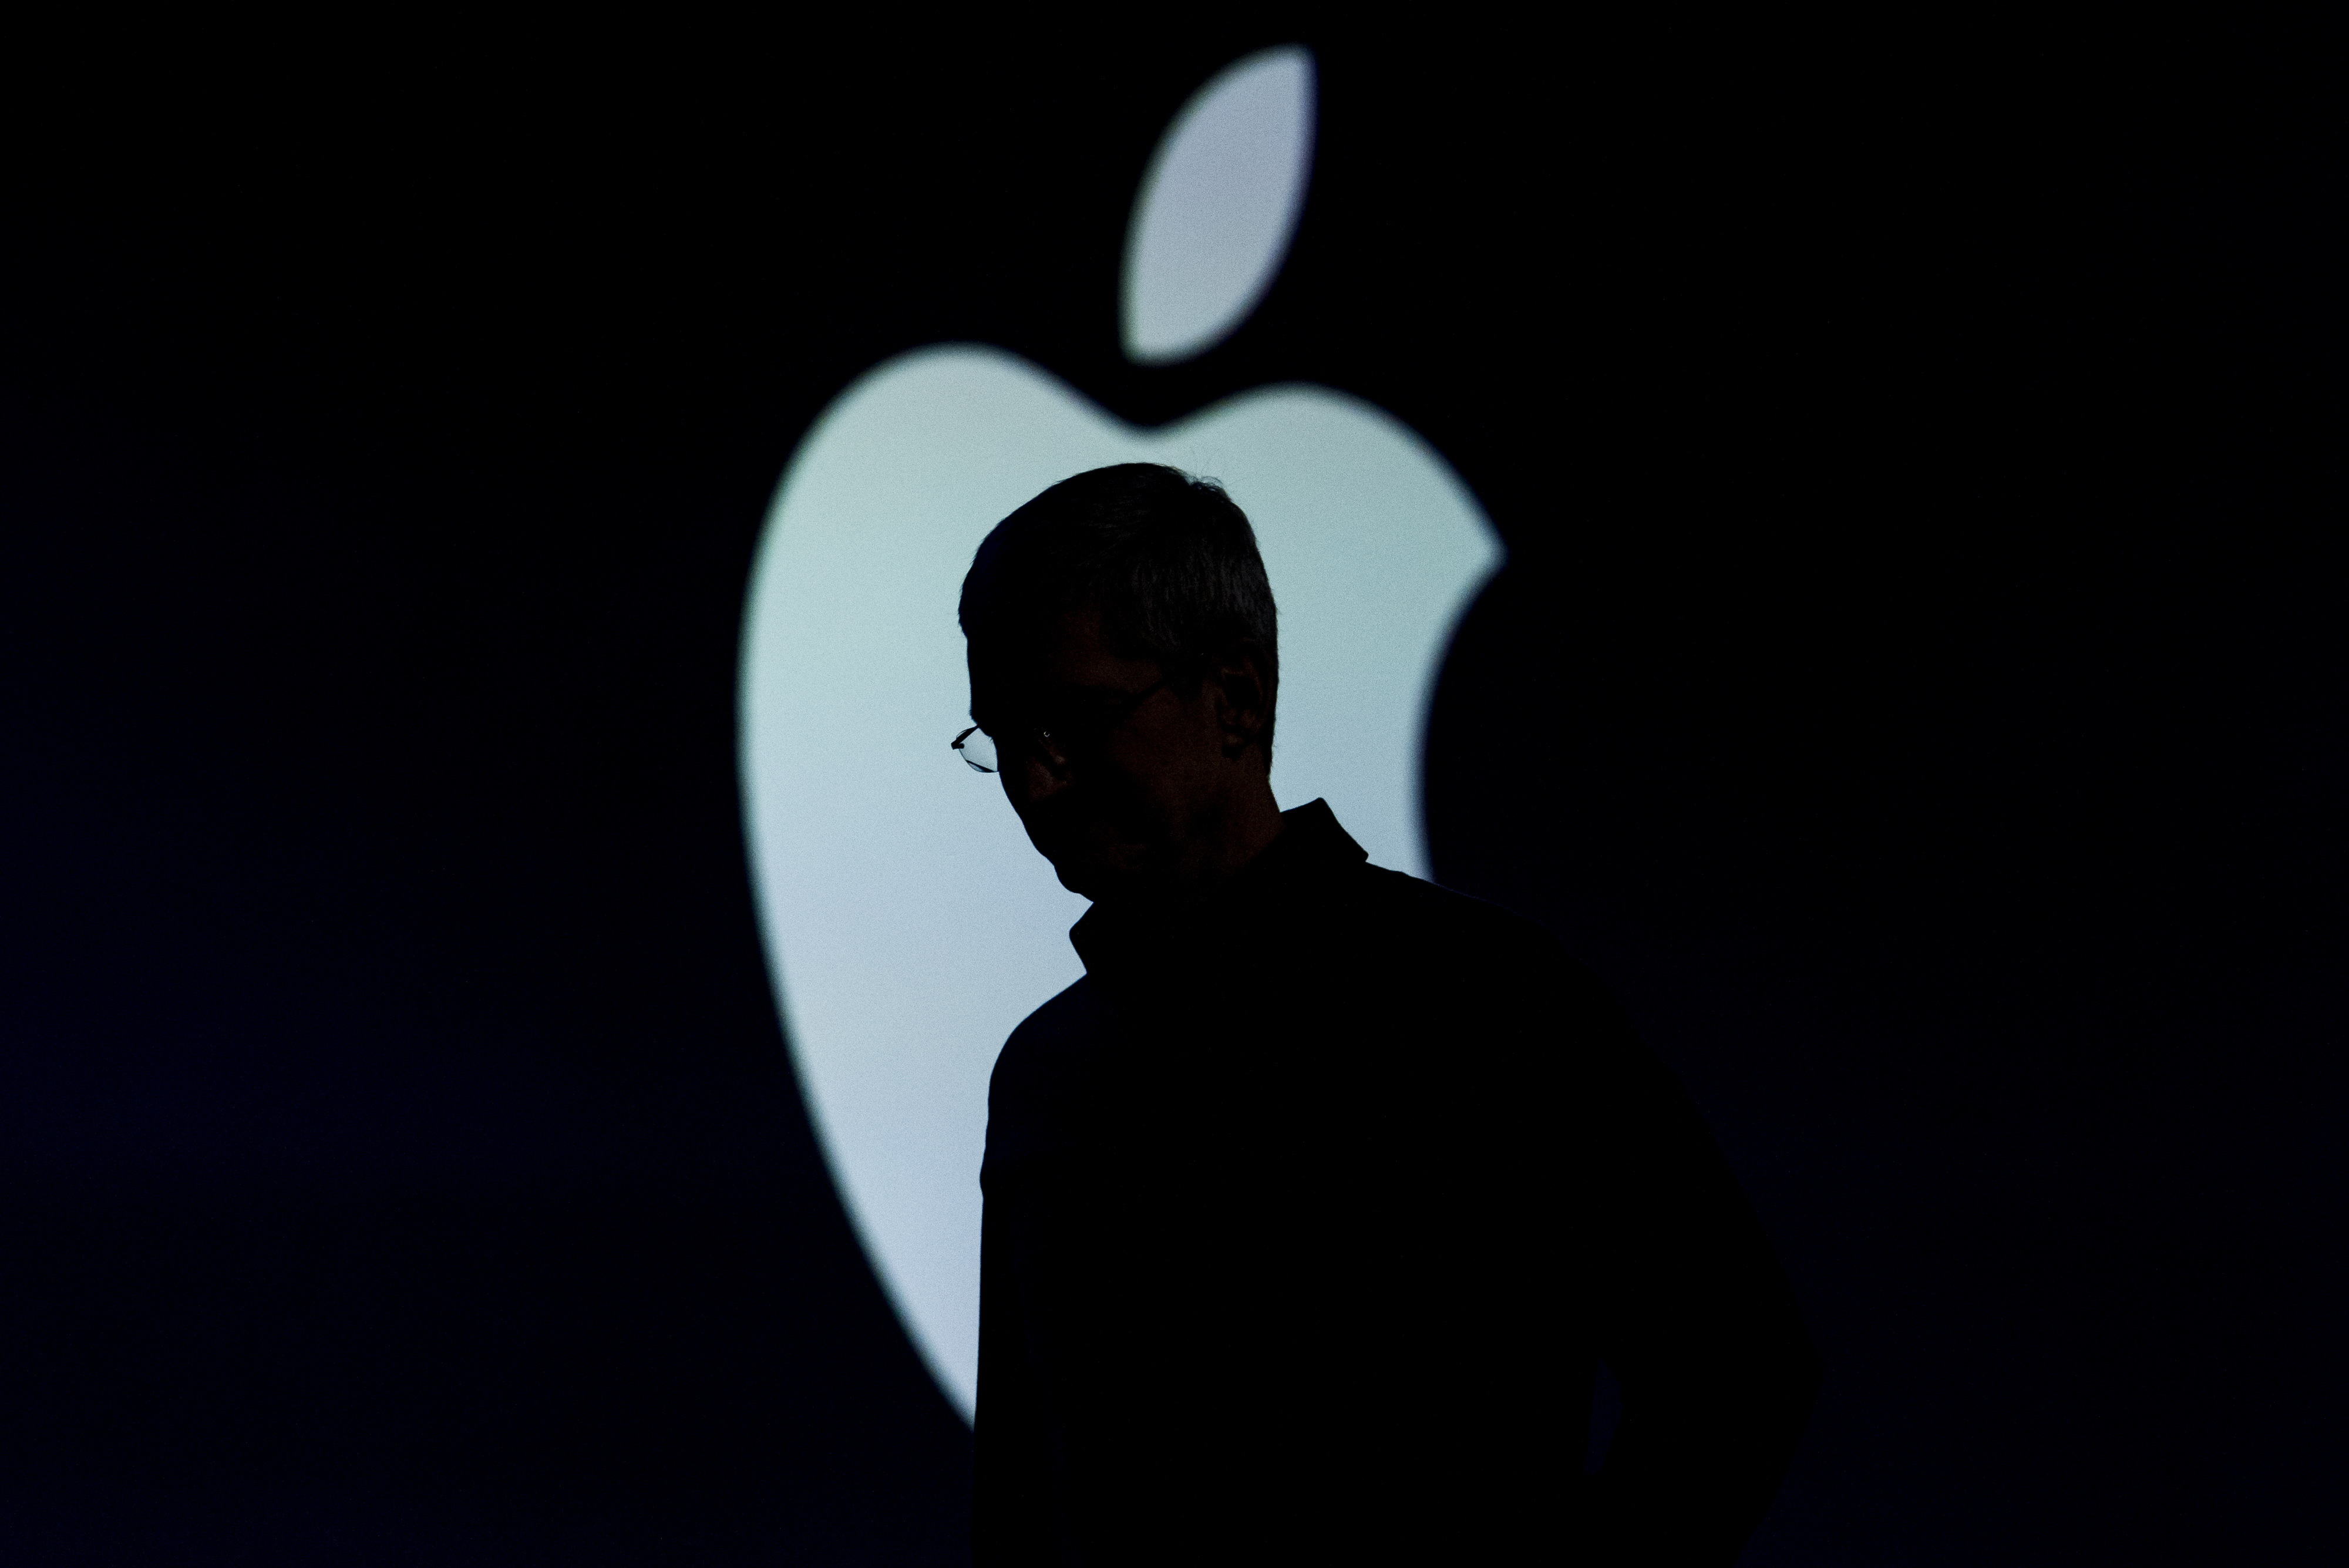 The silhouette of Tim Cook, chief executive officer of Apple Inc., is seen as he exits the stage during the Apple World Wide Developers Conference (WWDC) in San Francisco, California, U.S., on Monday, June 8, 2015.